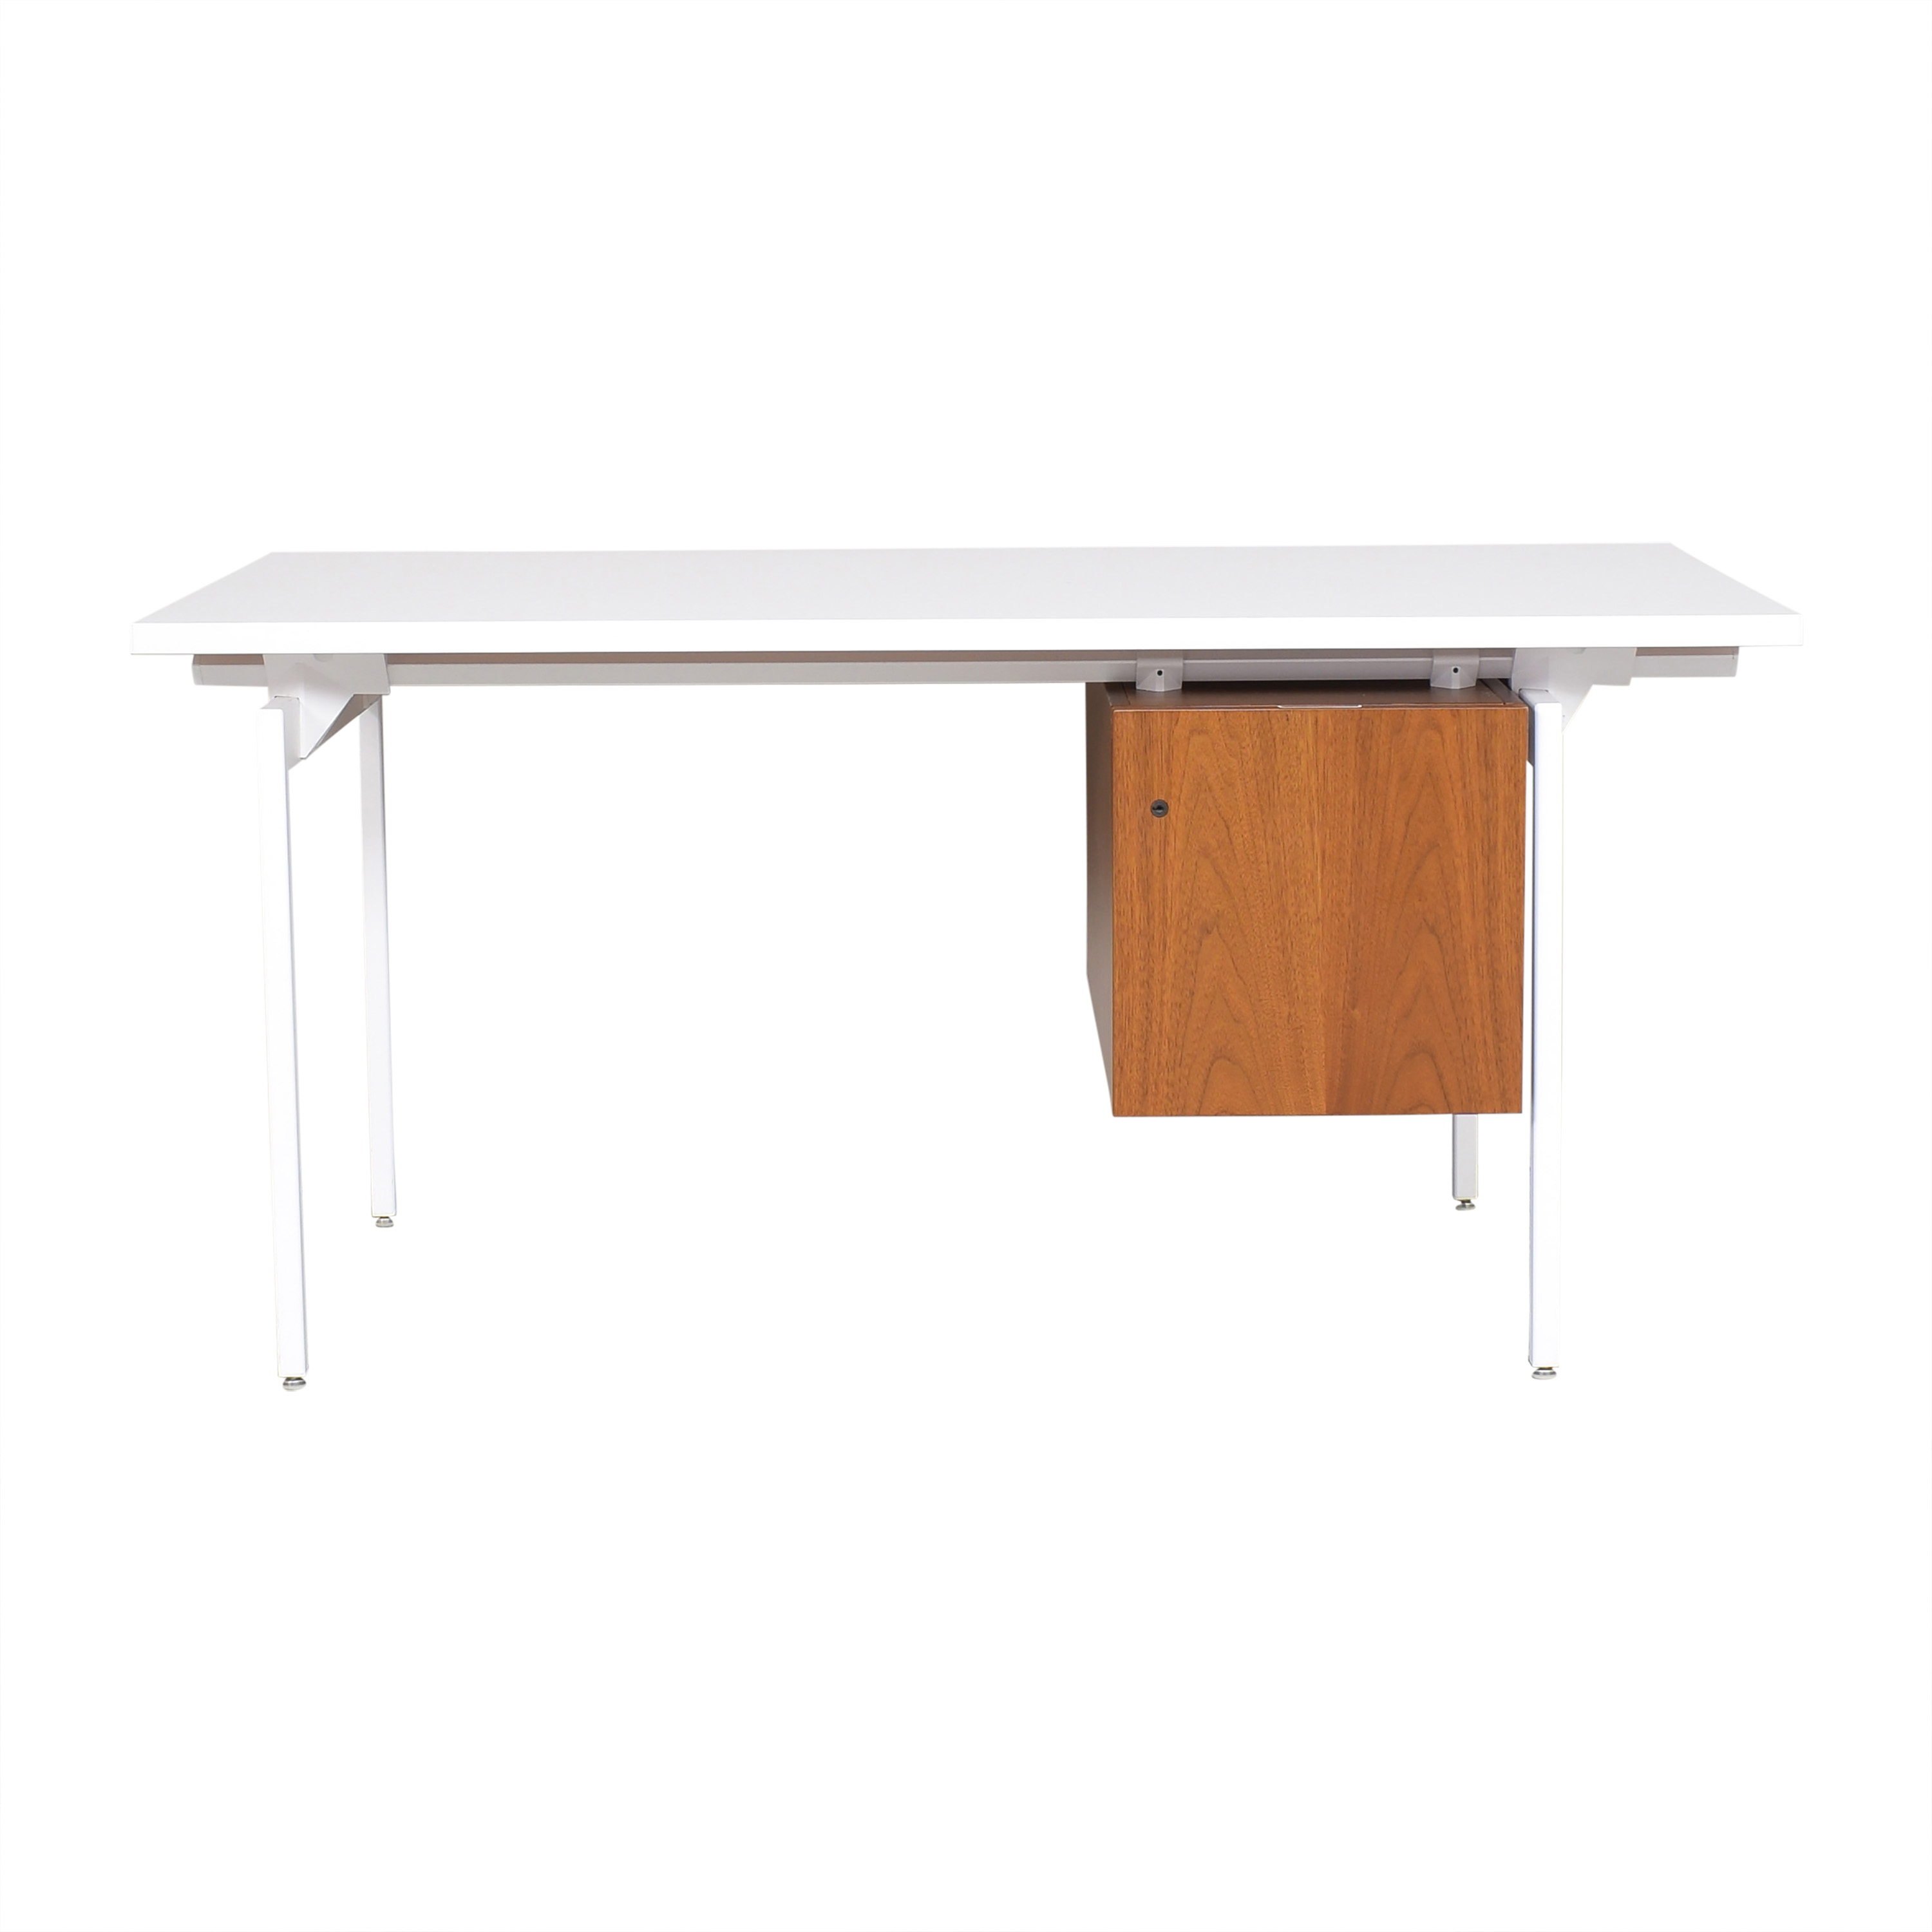 Knoll Knoll Antenna Desk with File second hand